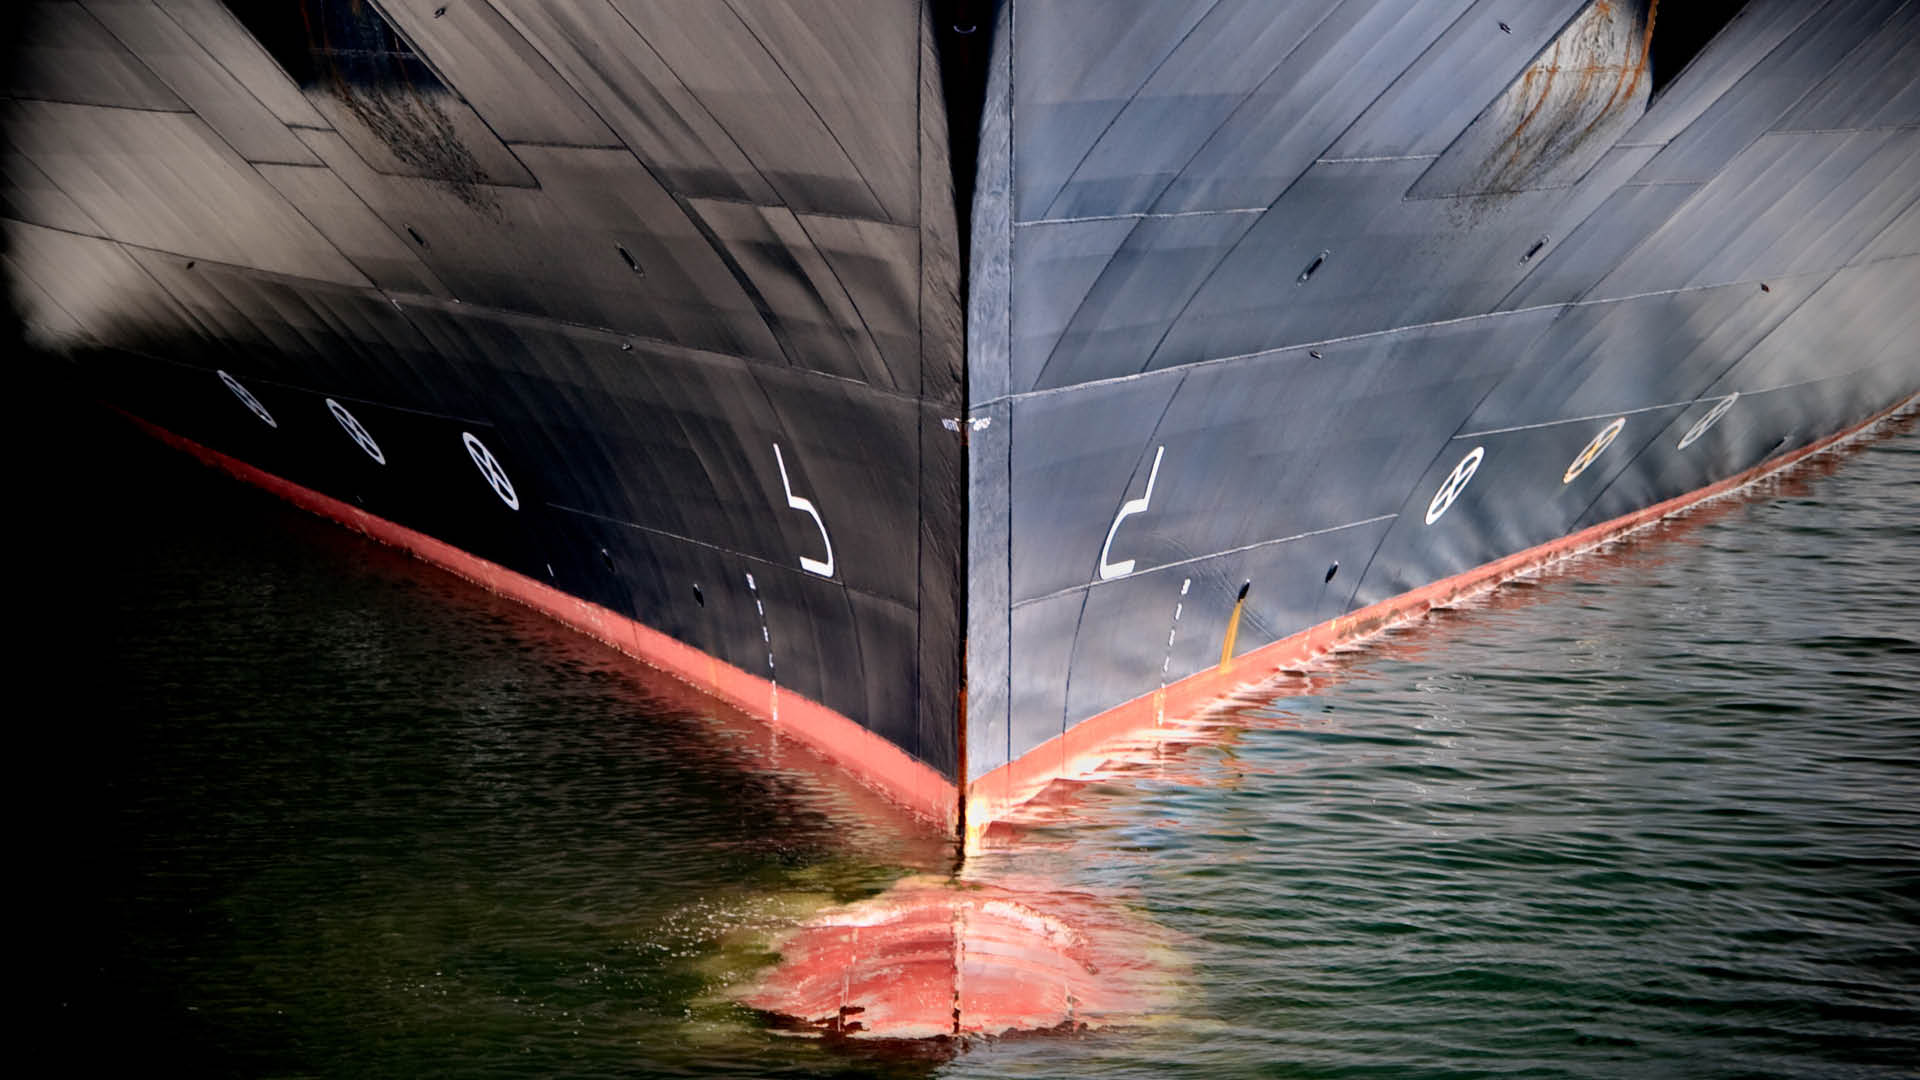 hull of the boat